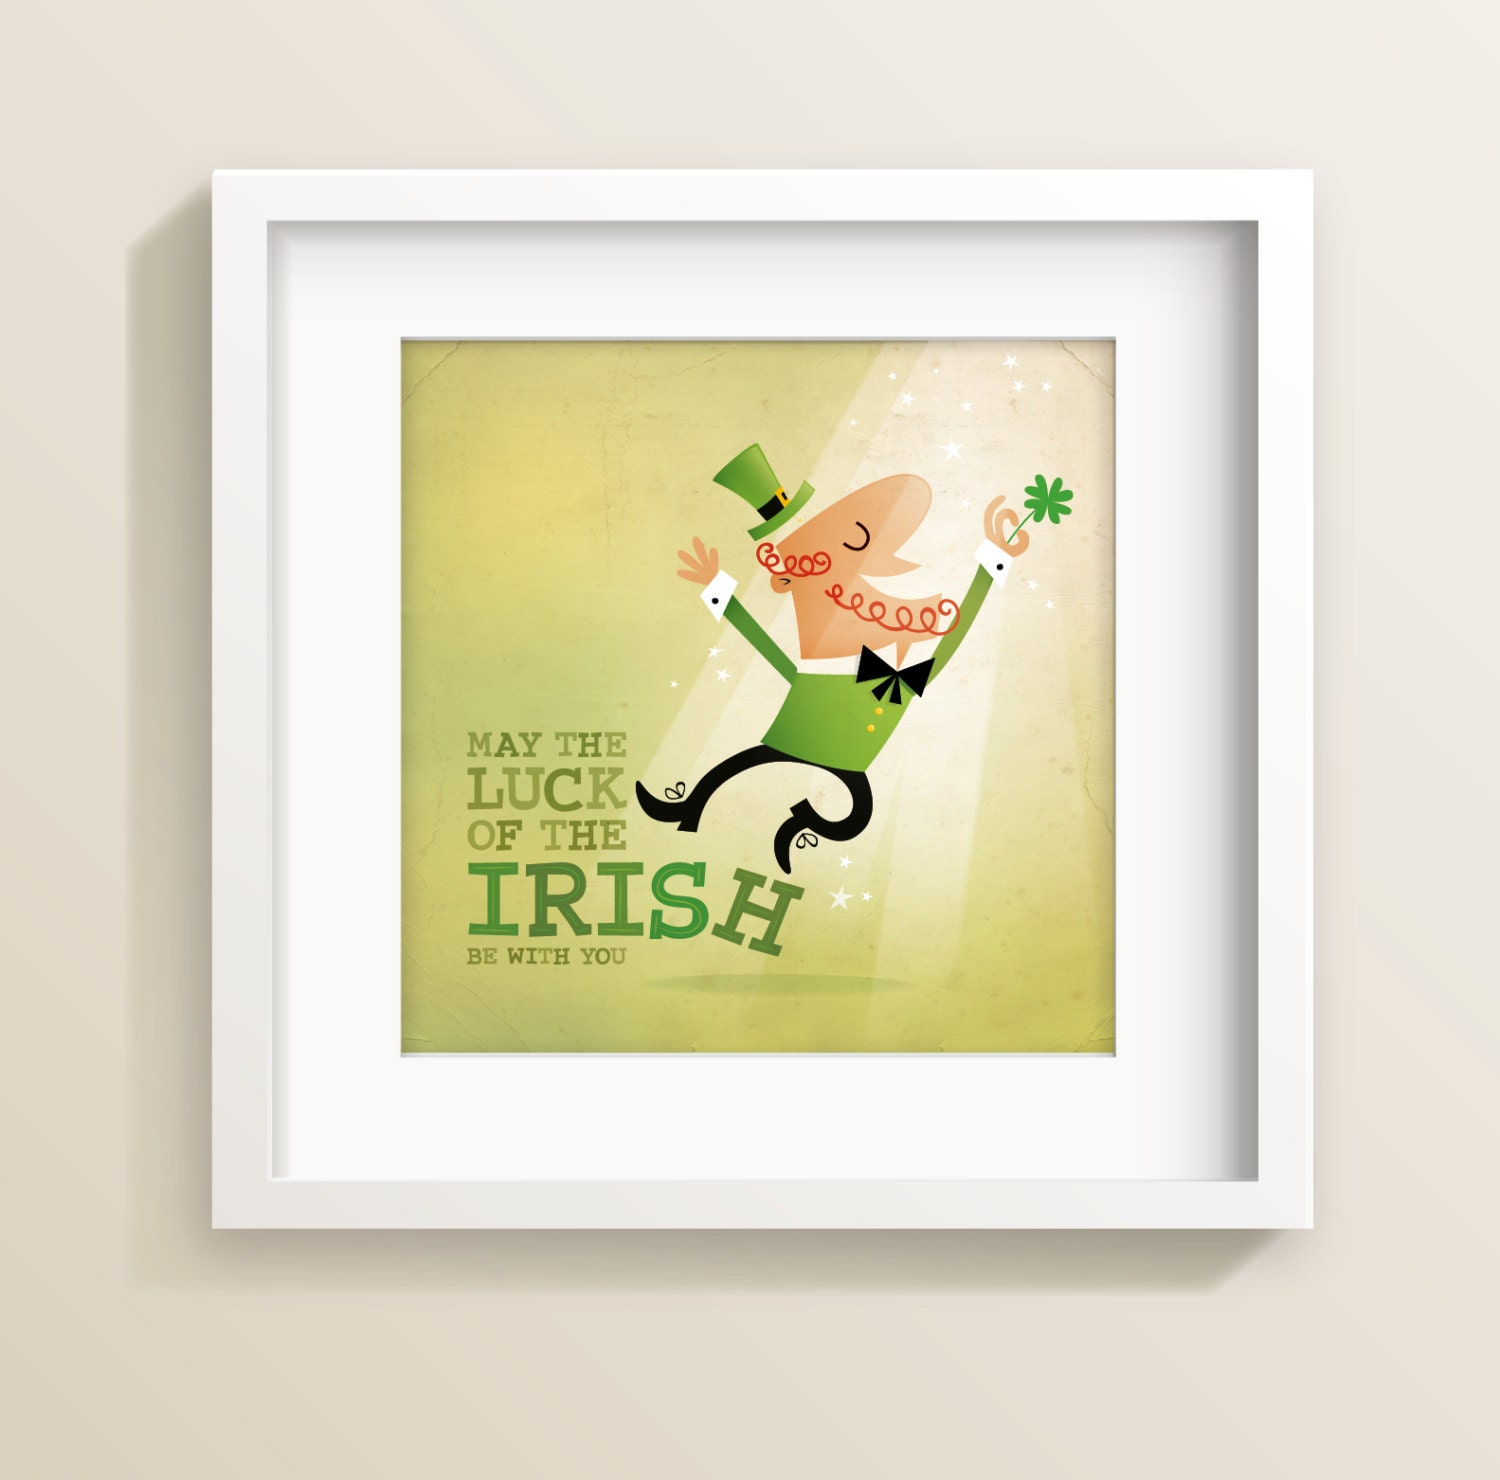 Fine Irish Wall Art Embellishment - The Wall Art Decorations ...